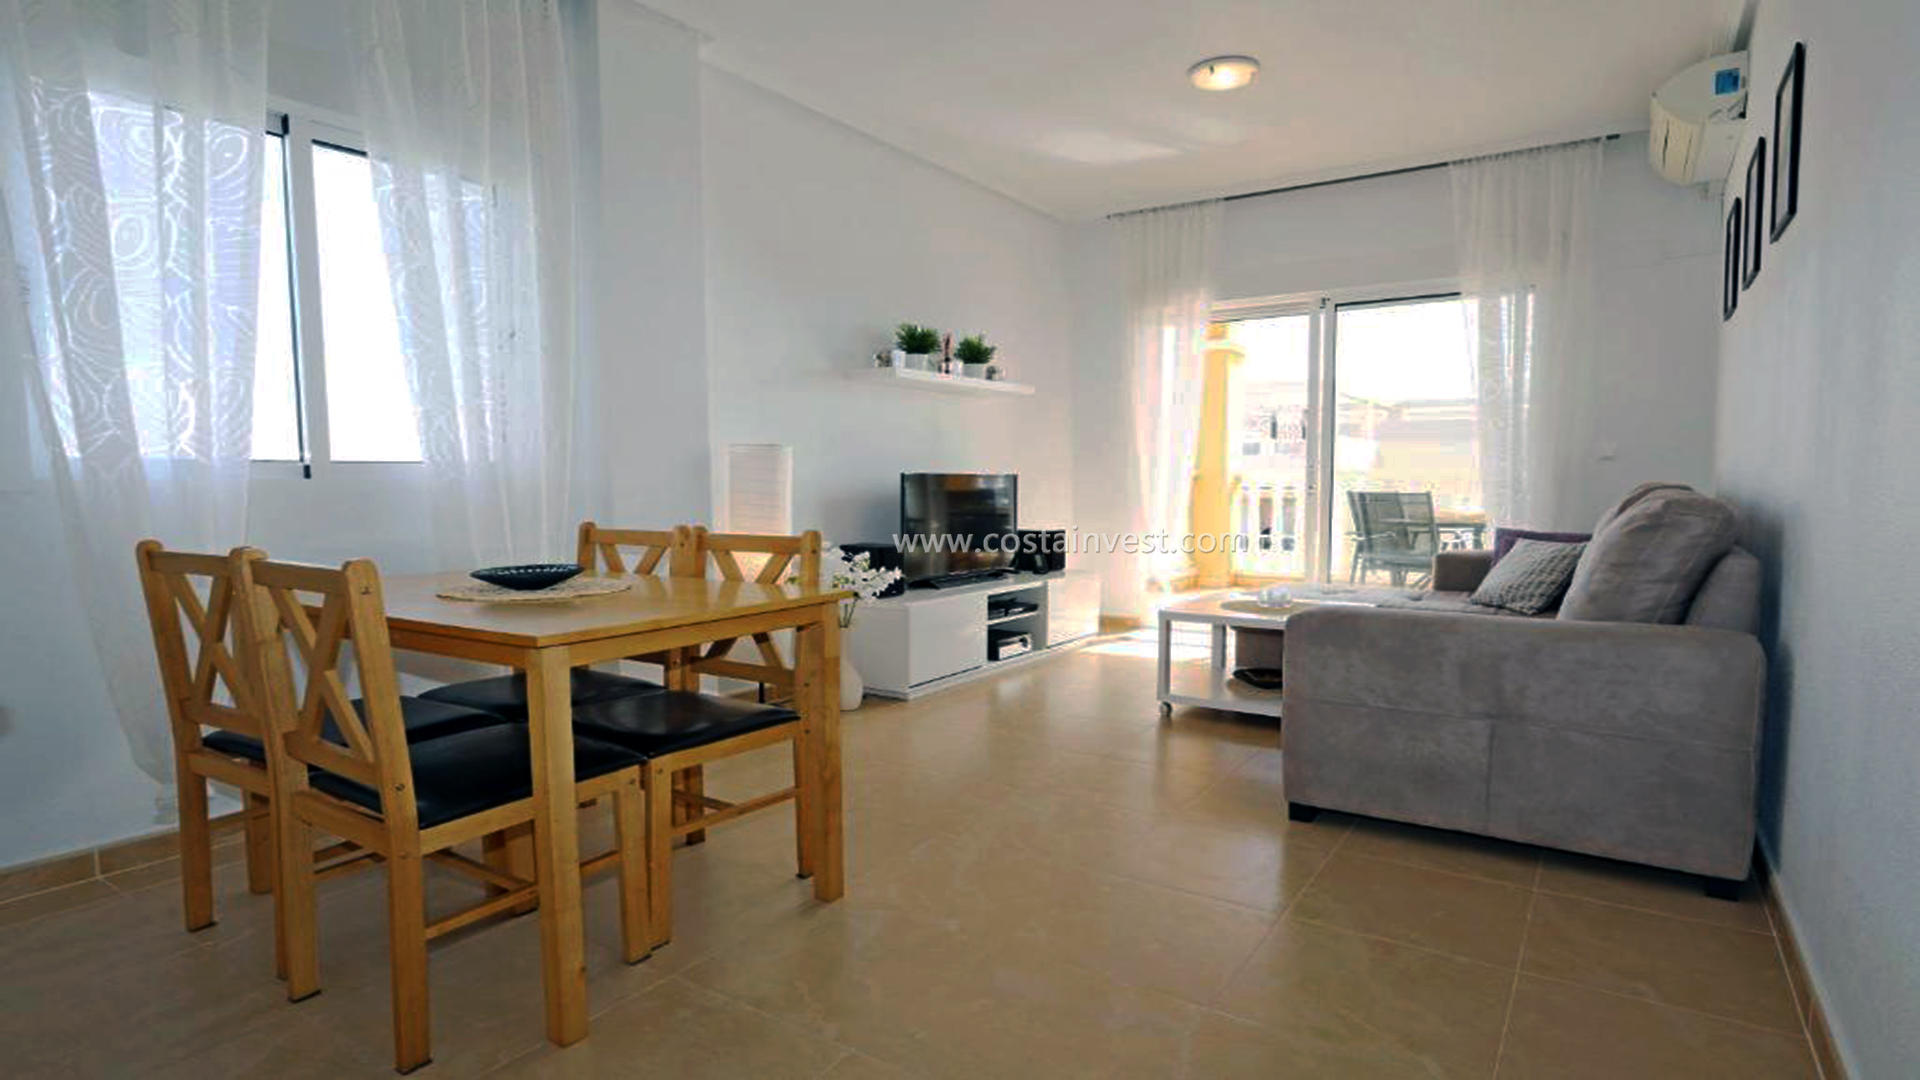 Appartement -                                       La Mata -                                       2 chambres -                                       4 occupants